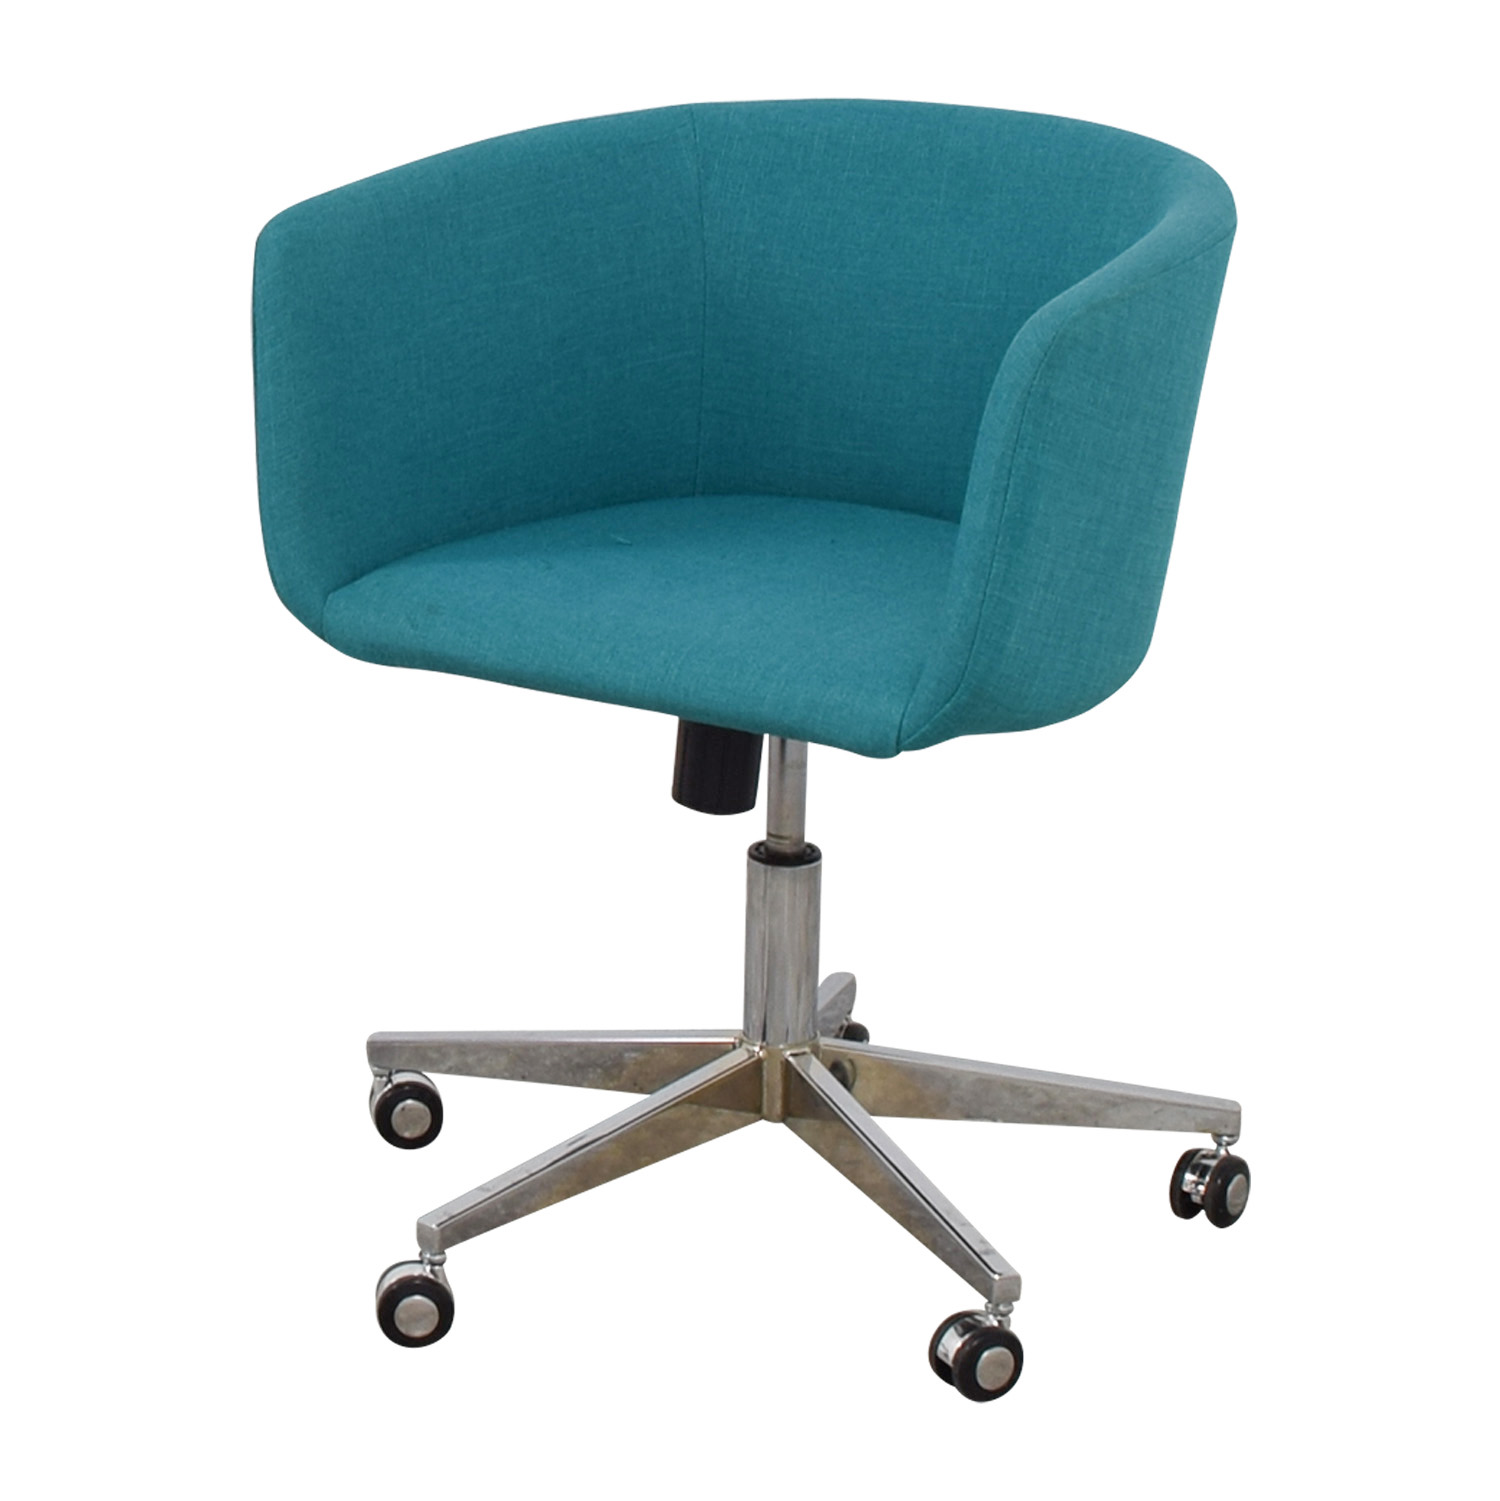 Charmant ... CB2 CB2 Teal Desk Chair With Castors Second Hand ...